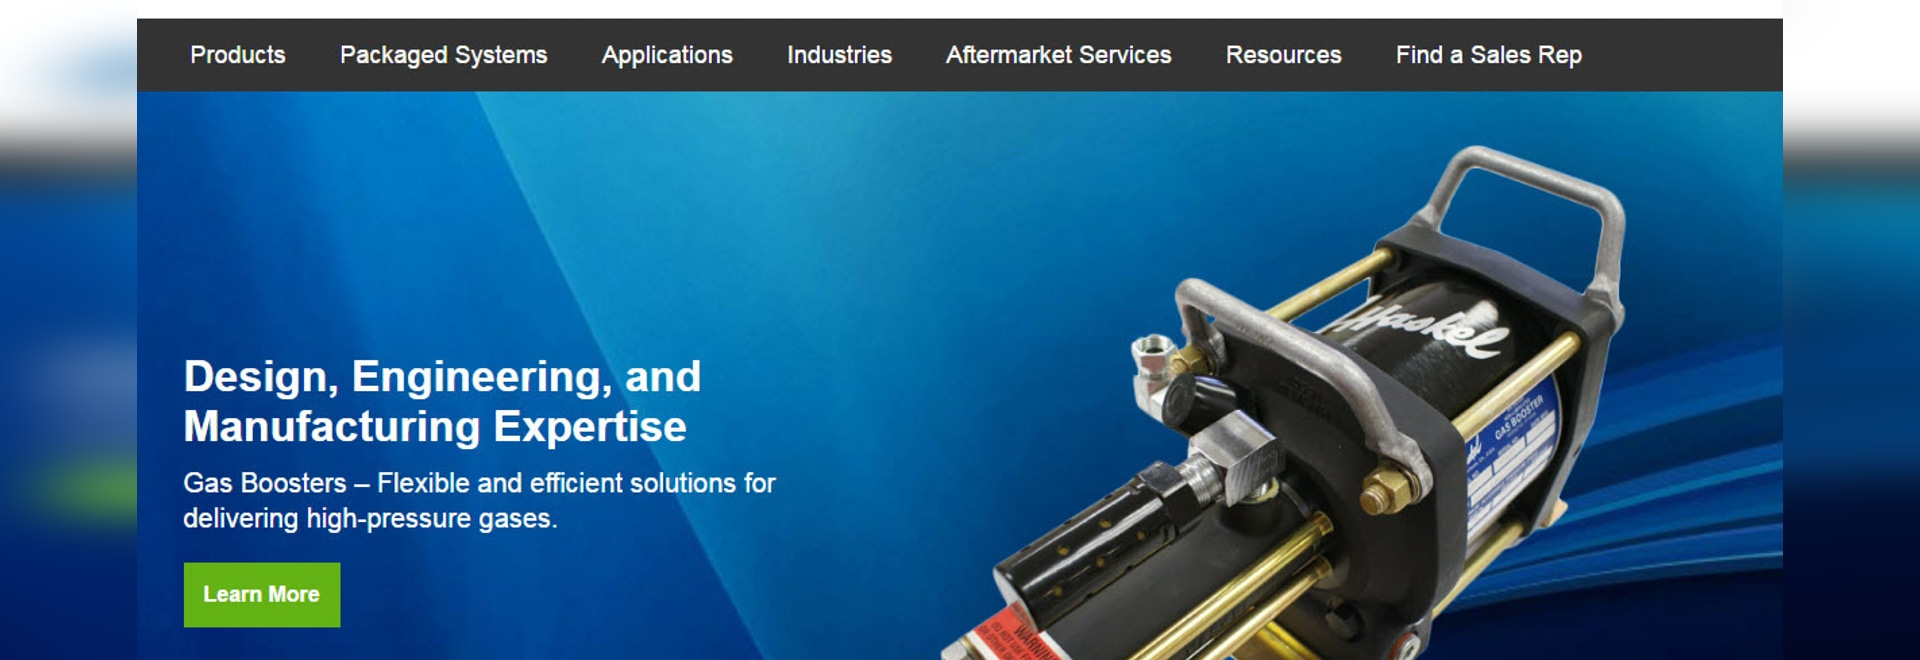 Haskel Launches New Website